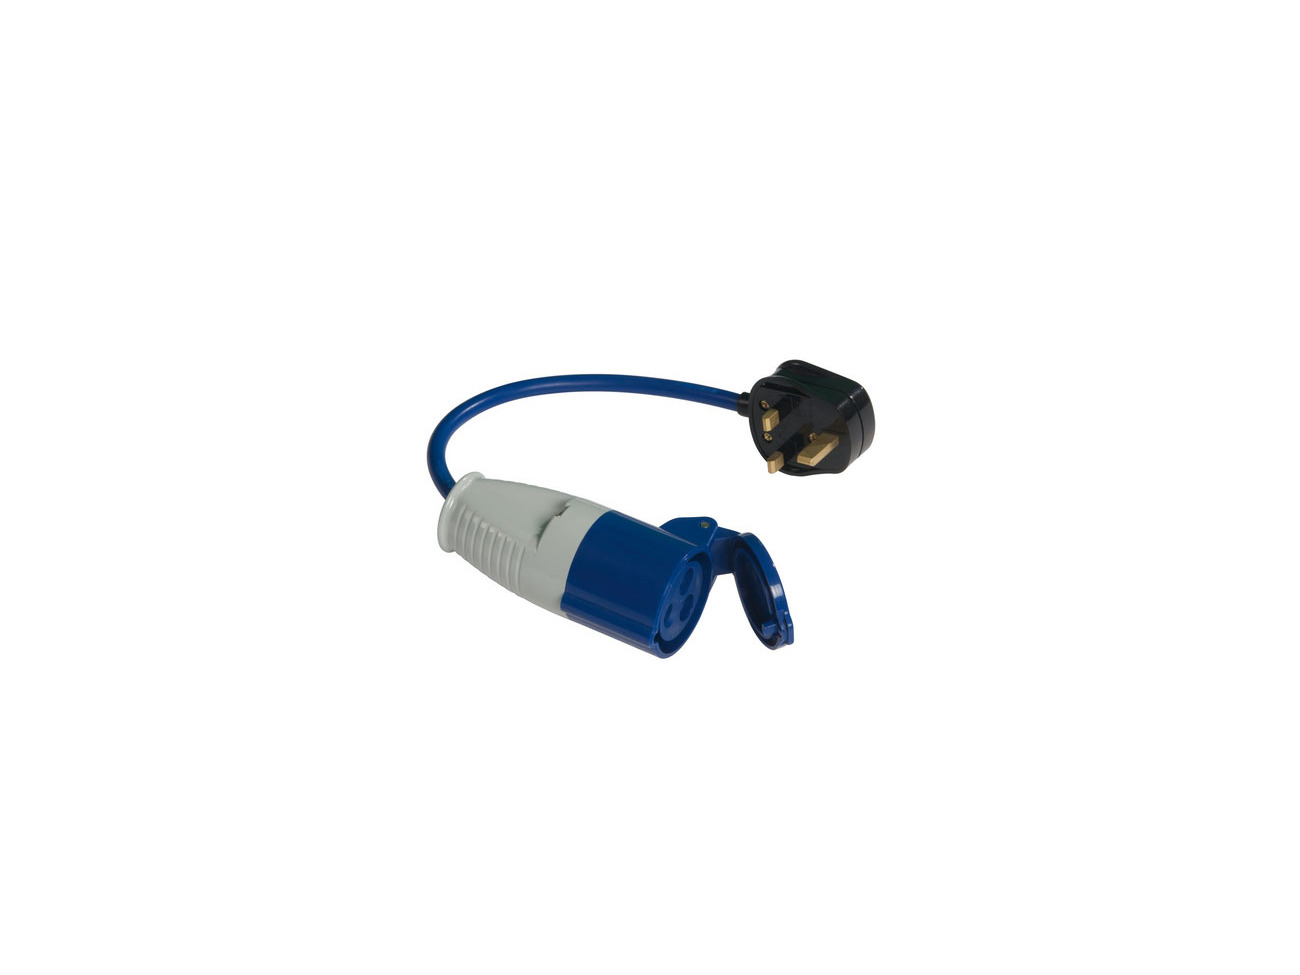 Powermaster 13A 16A Fly Lead Converter 13A Plug to 16A Socket